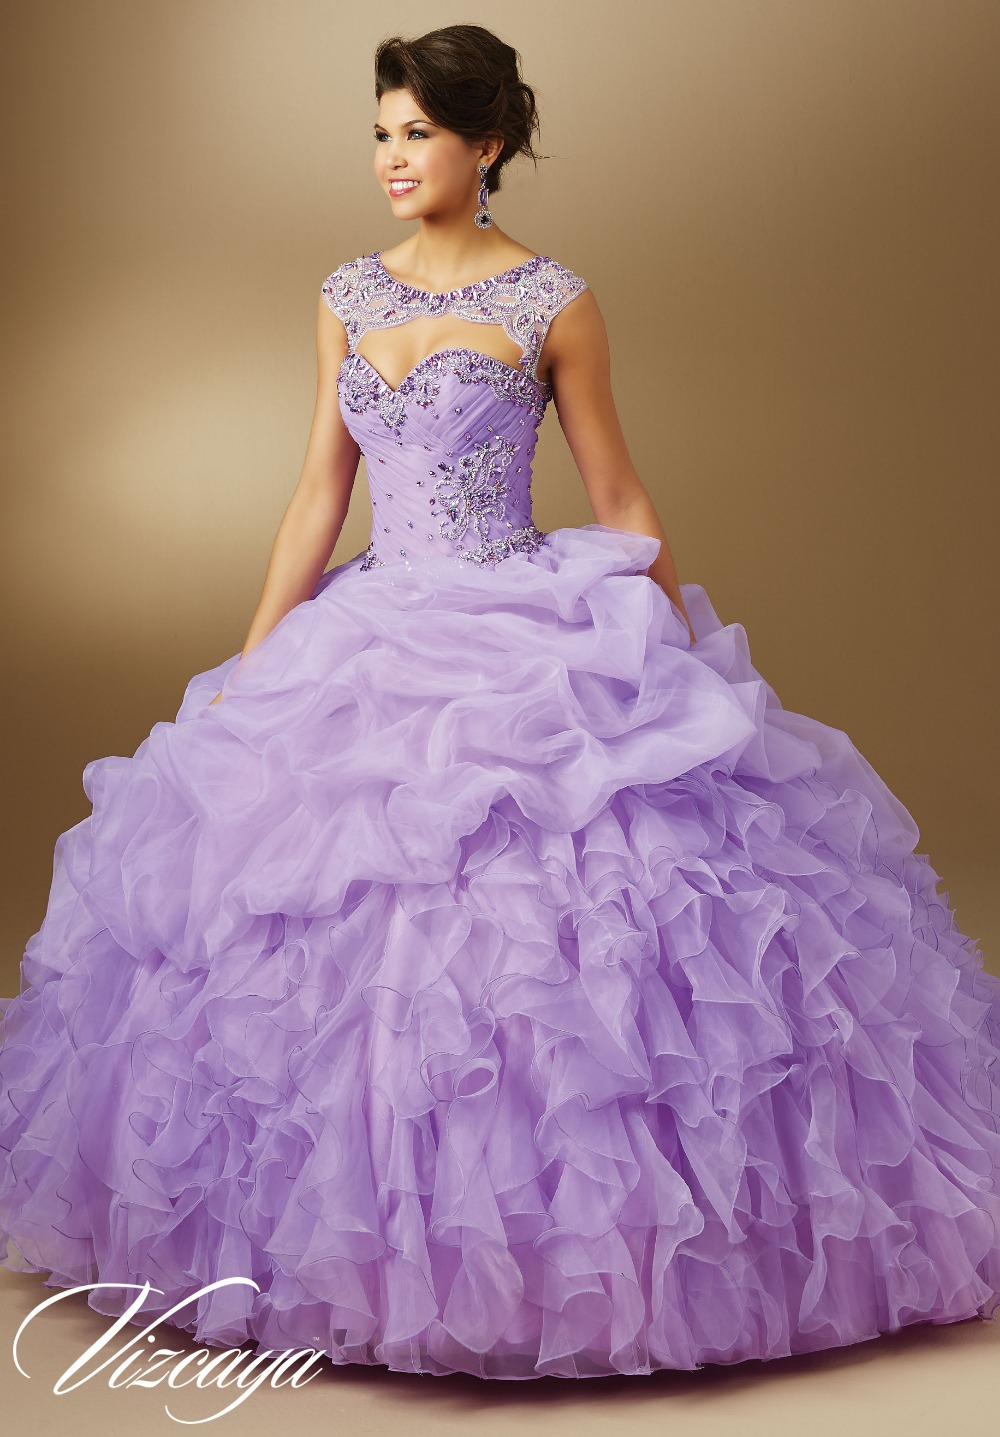 5b48c3d6c92 Light Purple Quinceanera Dresses With Straps - Gomes Weine AG